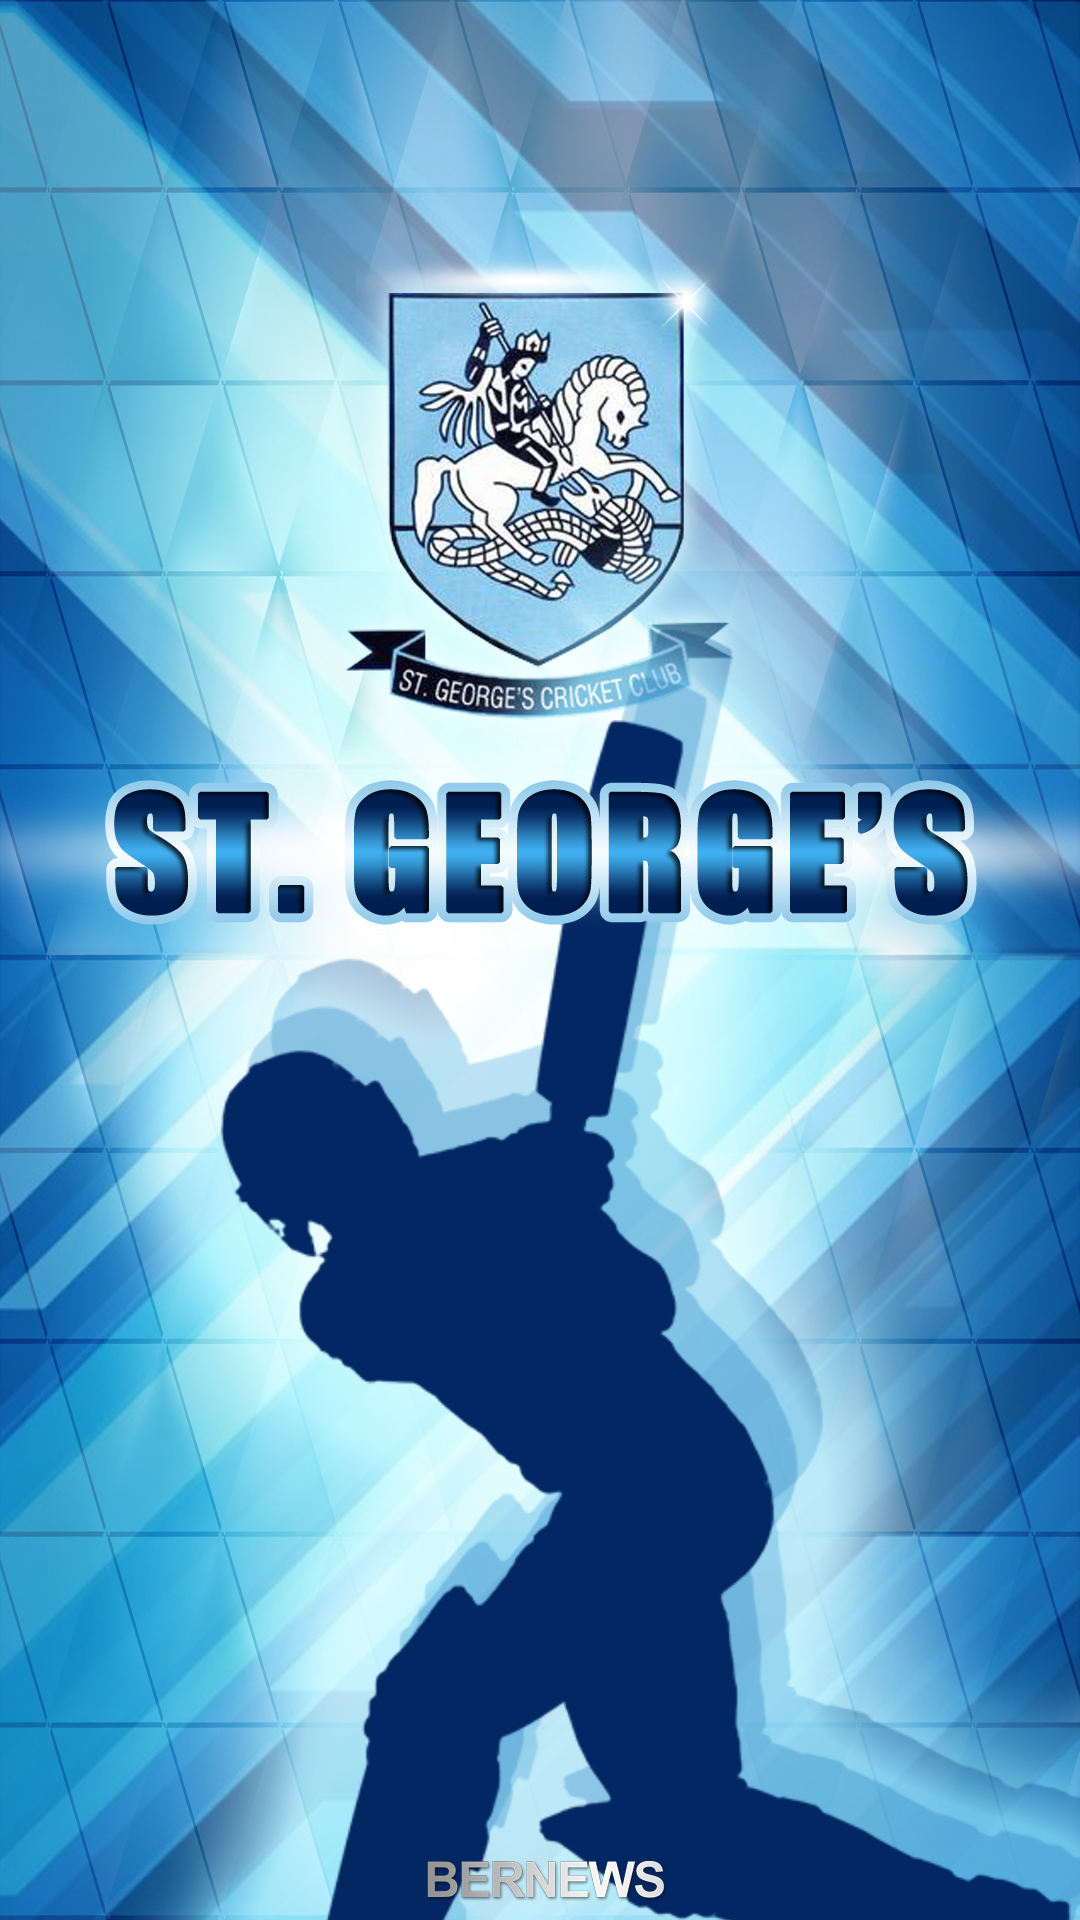 St Georges Cup Match Bermuda Phone Wallpaper by Bernews 2018 (6)